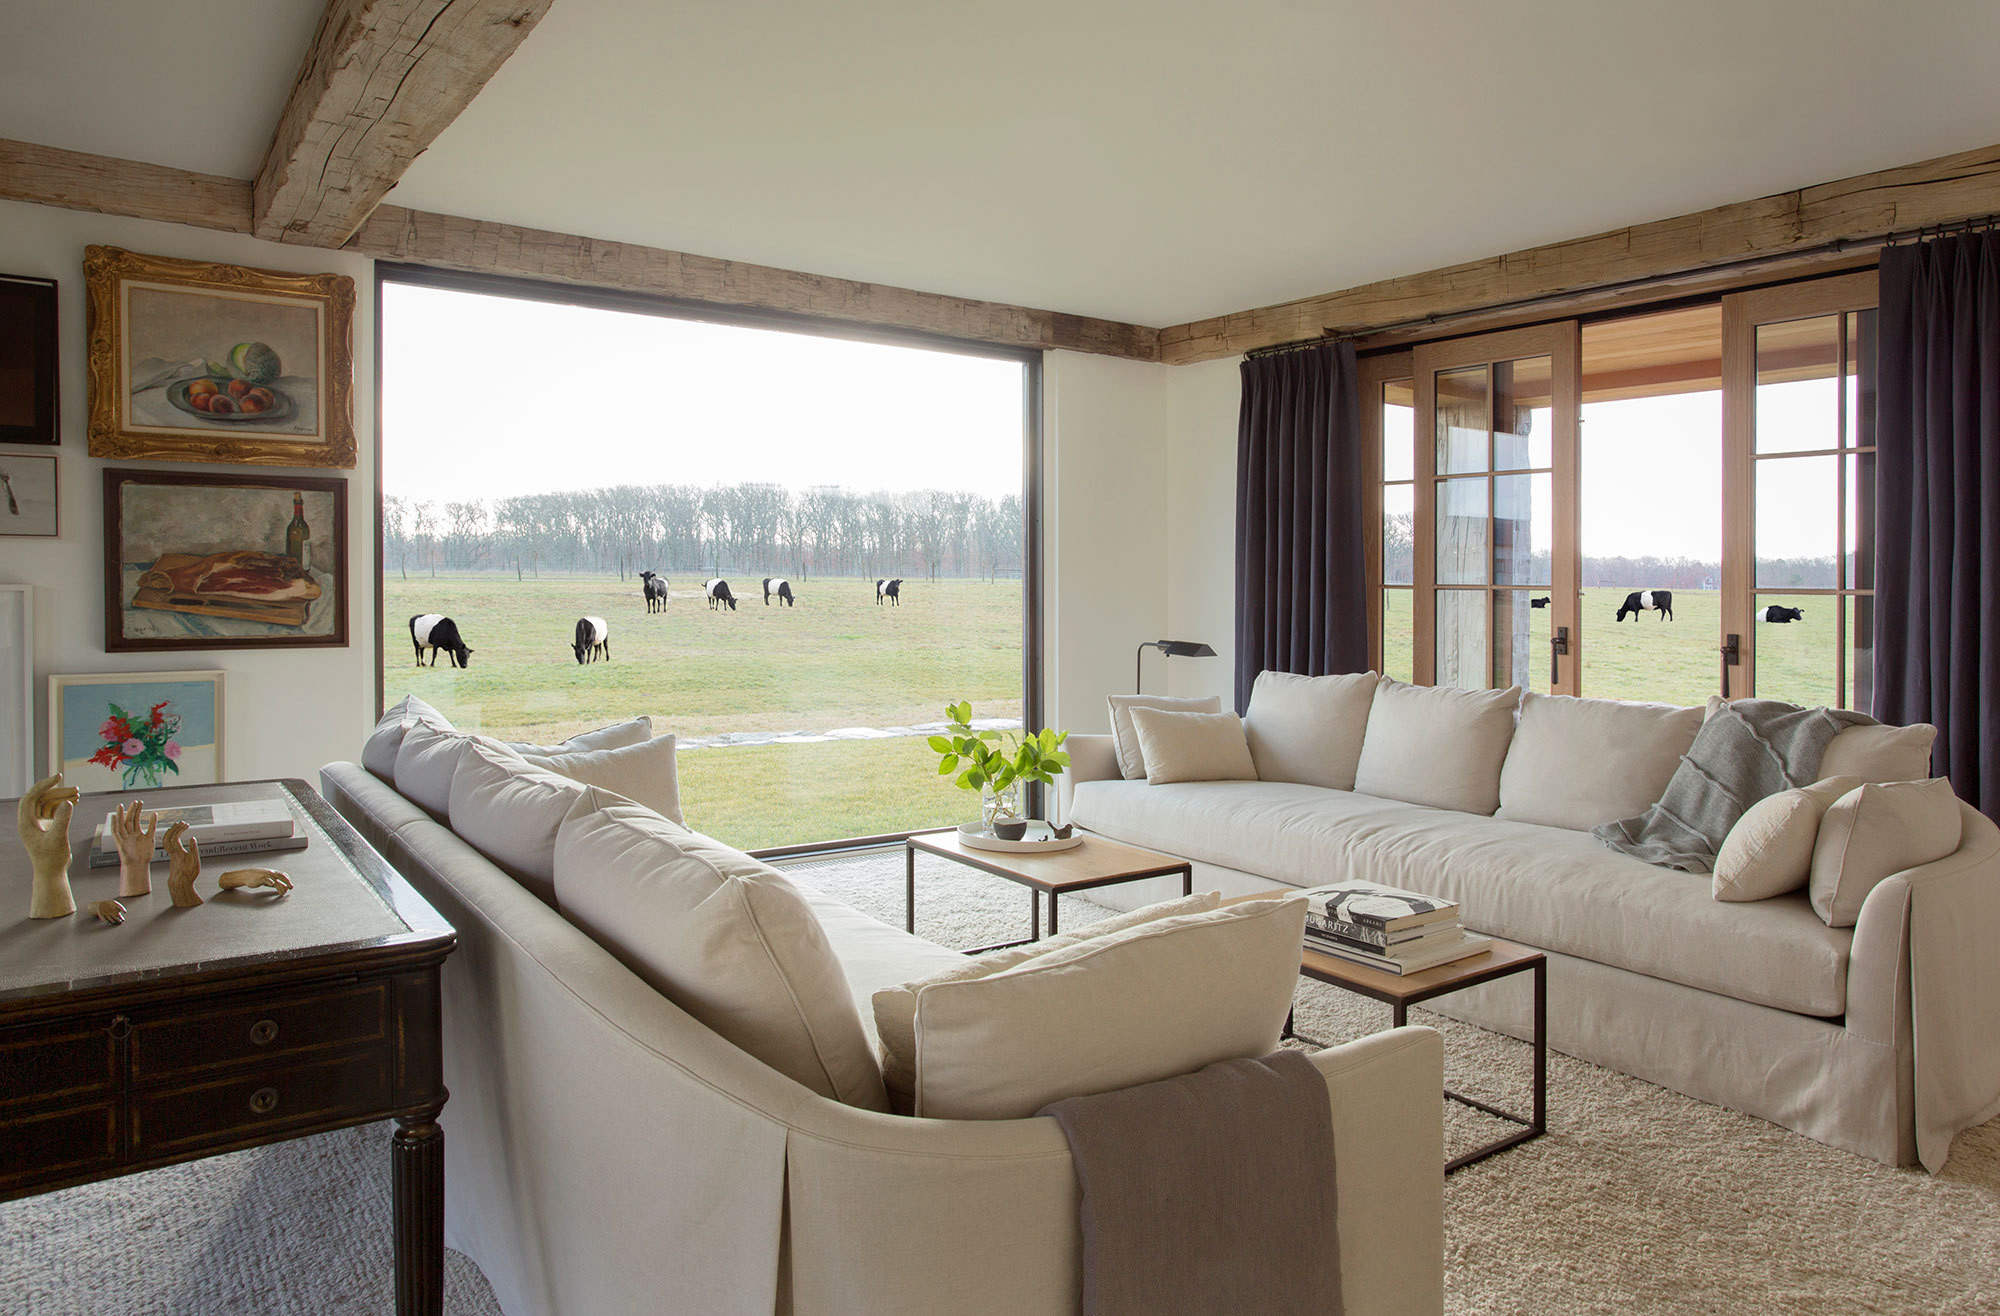 how to decorate my living room rustic small arrangements a modern farmhouse on martha s vineyard home tour lonny designed by kathleen walsh the palette for this was kept neutral